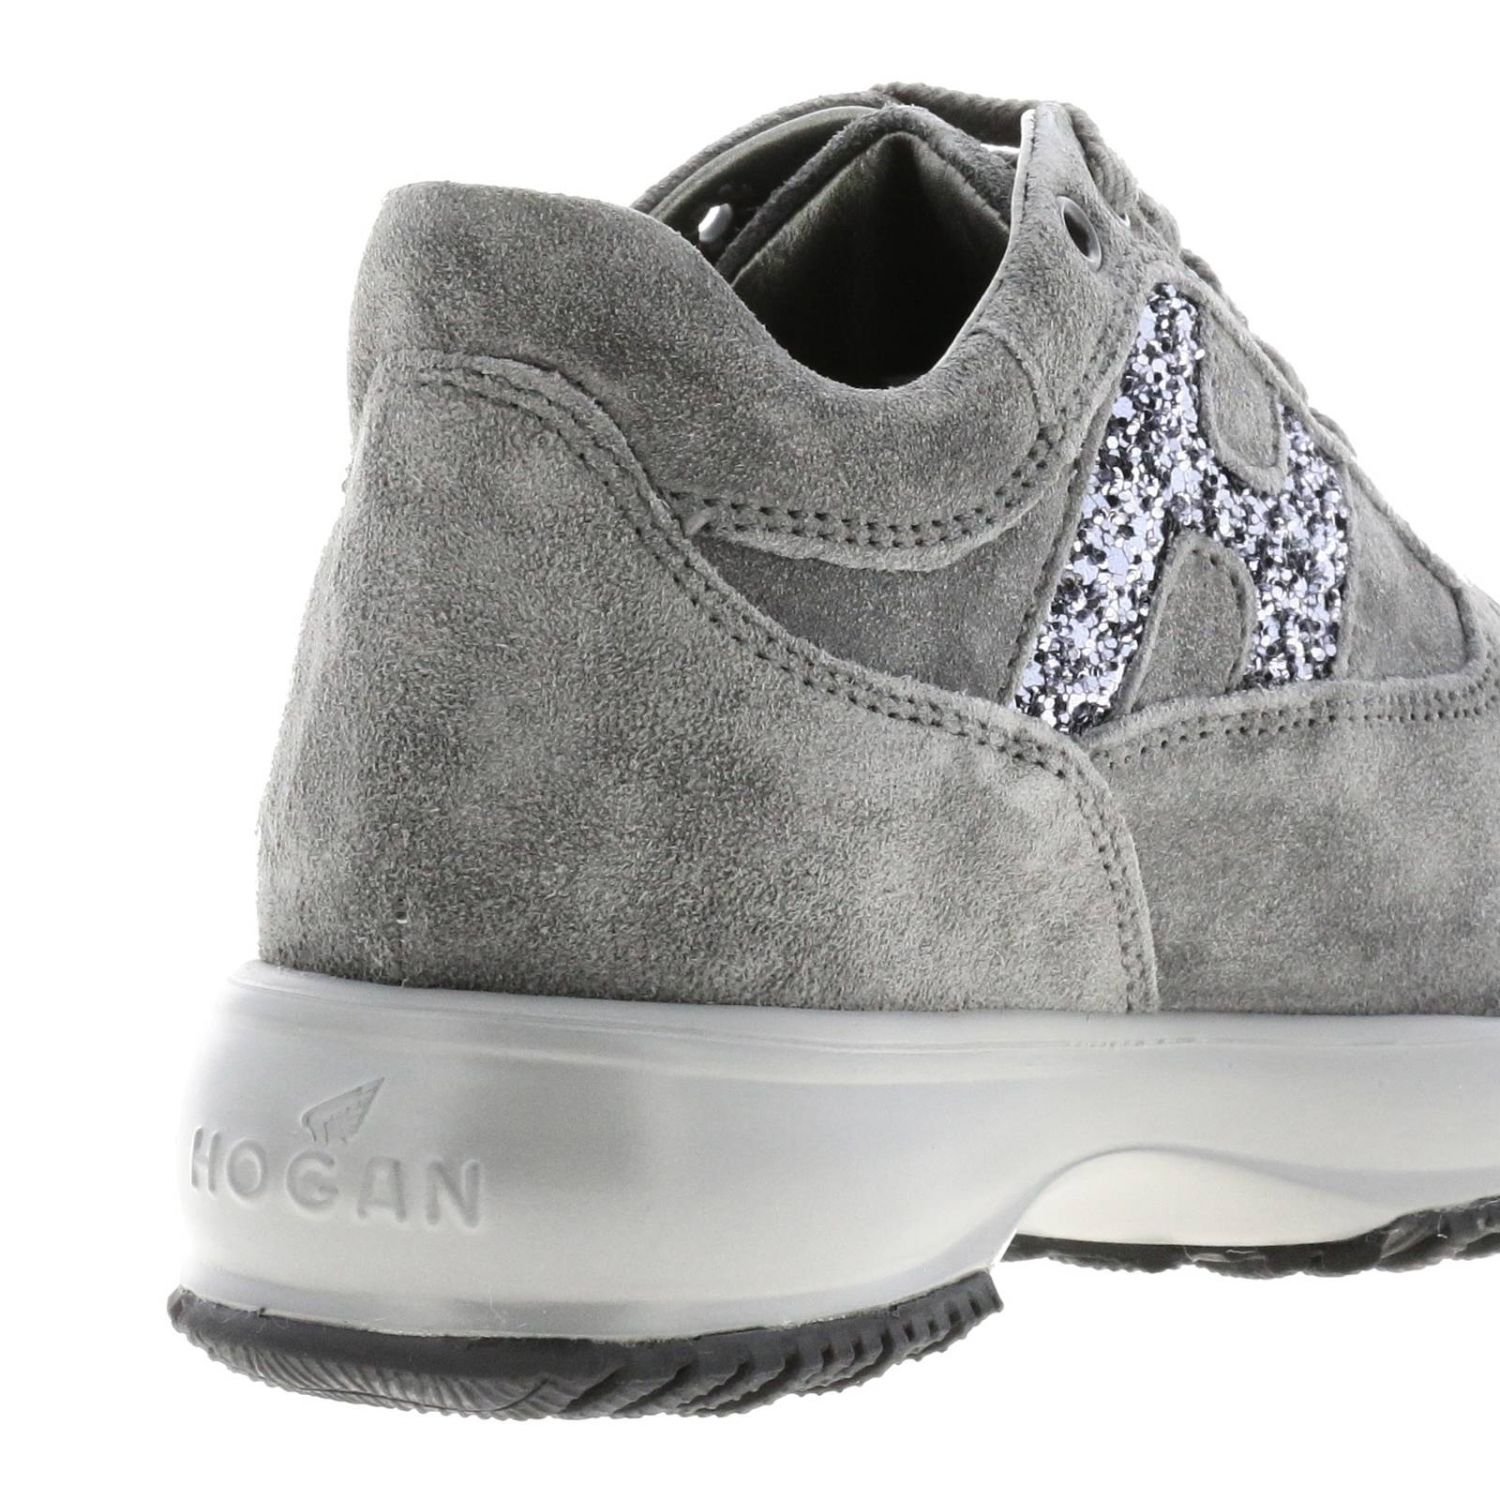 Hogan Interactive suede sneakers with H glitter lead 5